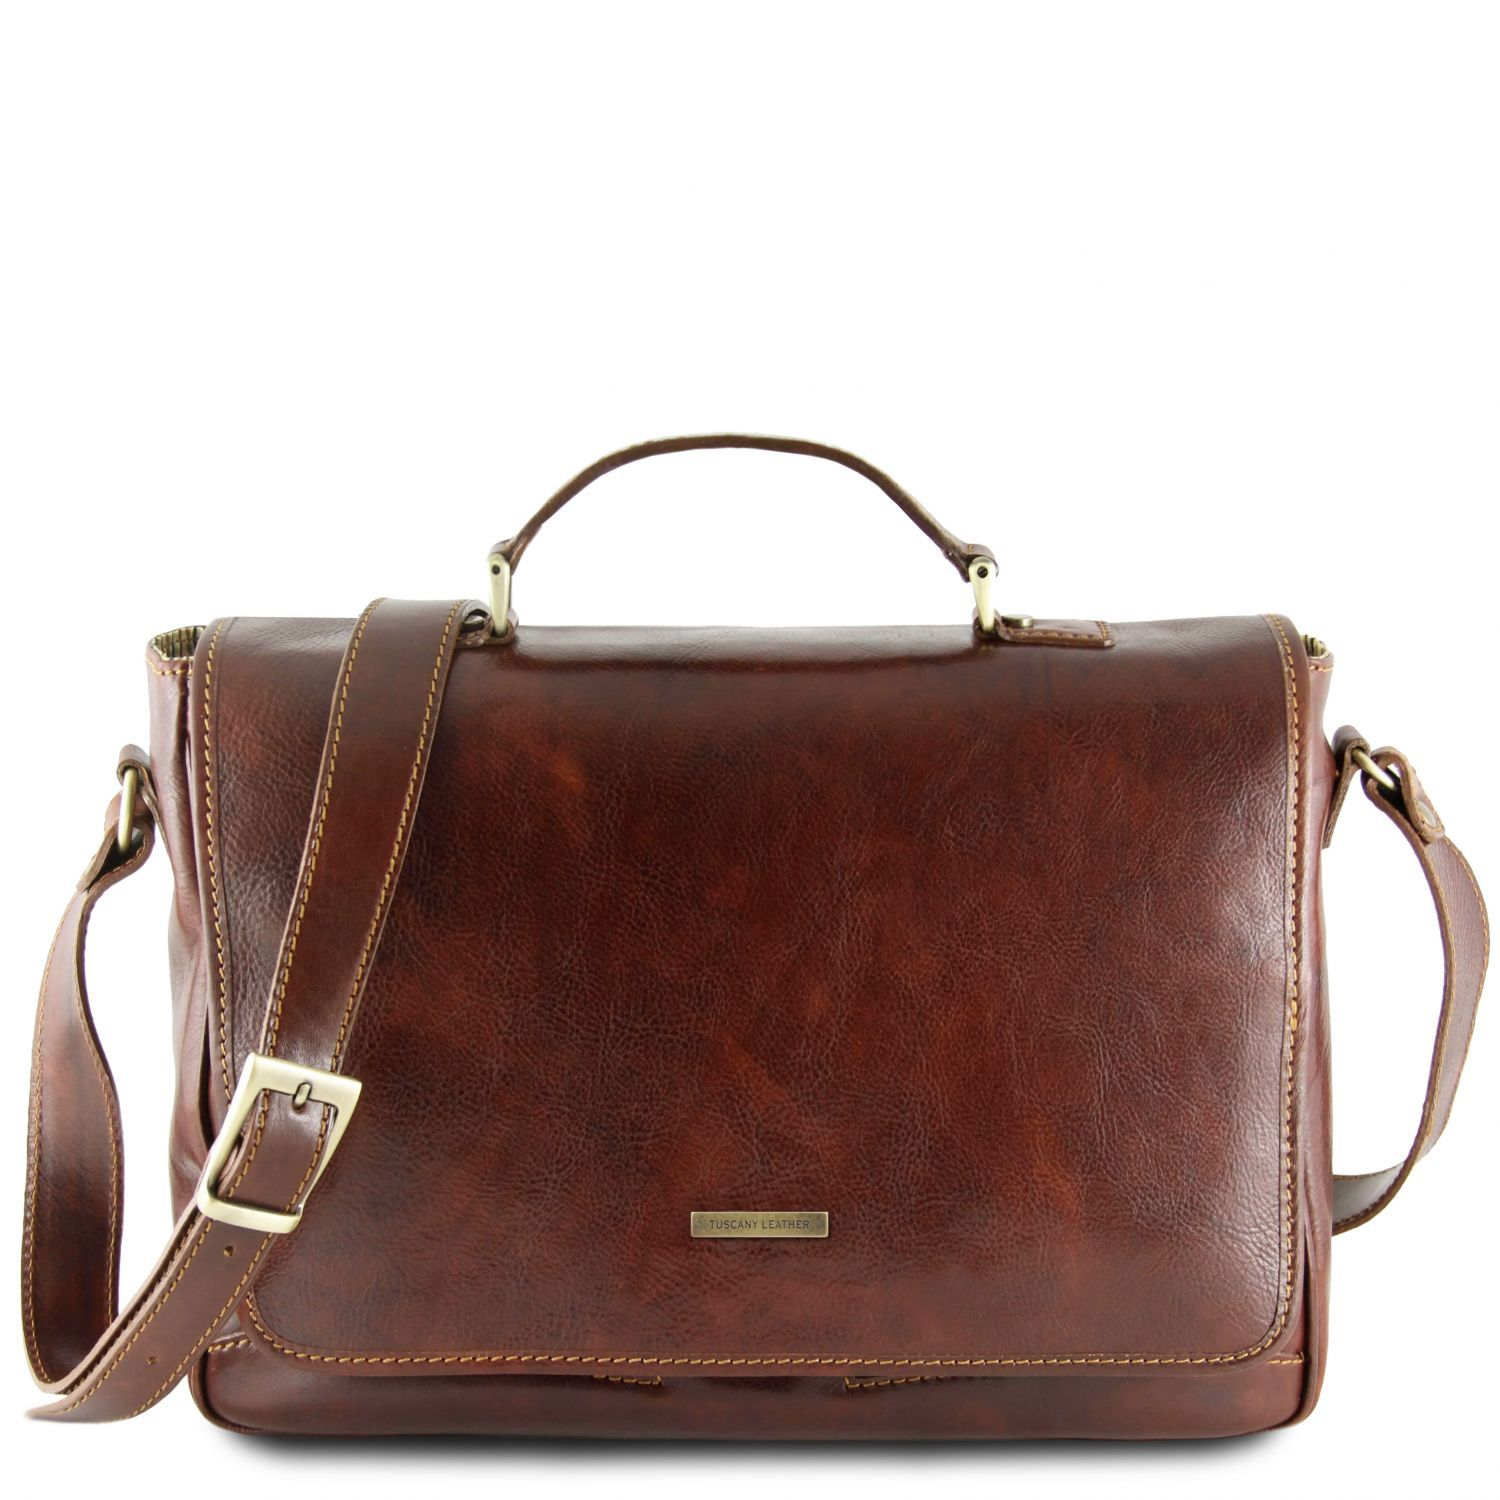 Padova - Exclusive leather laptop case (TL140891) - Leather laptop bags | DILUSSOBAGS